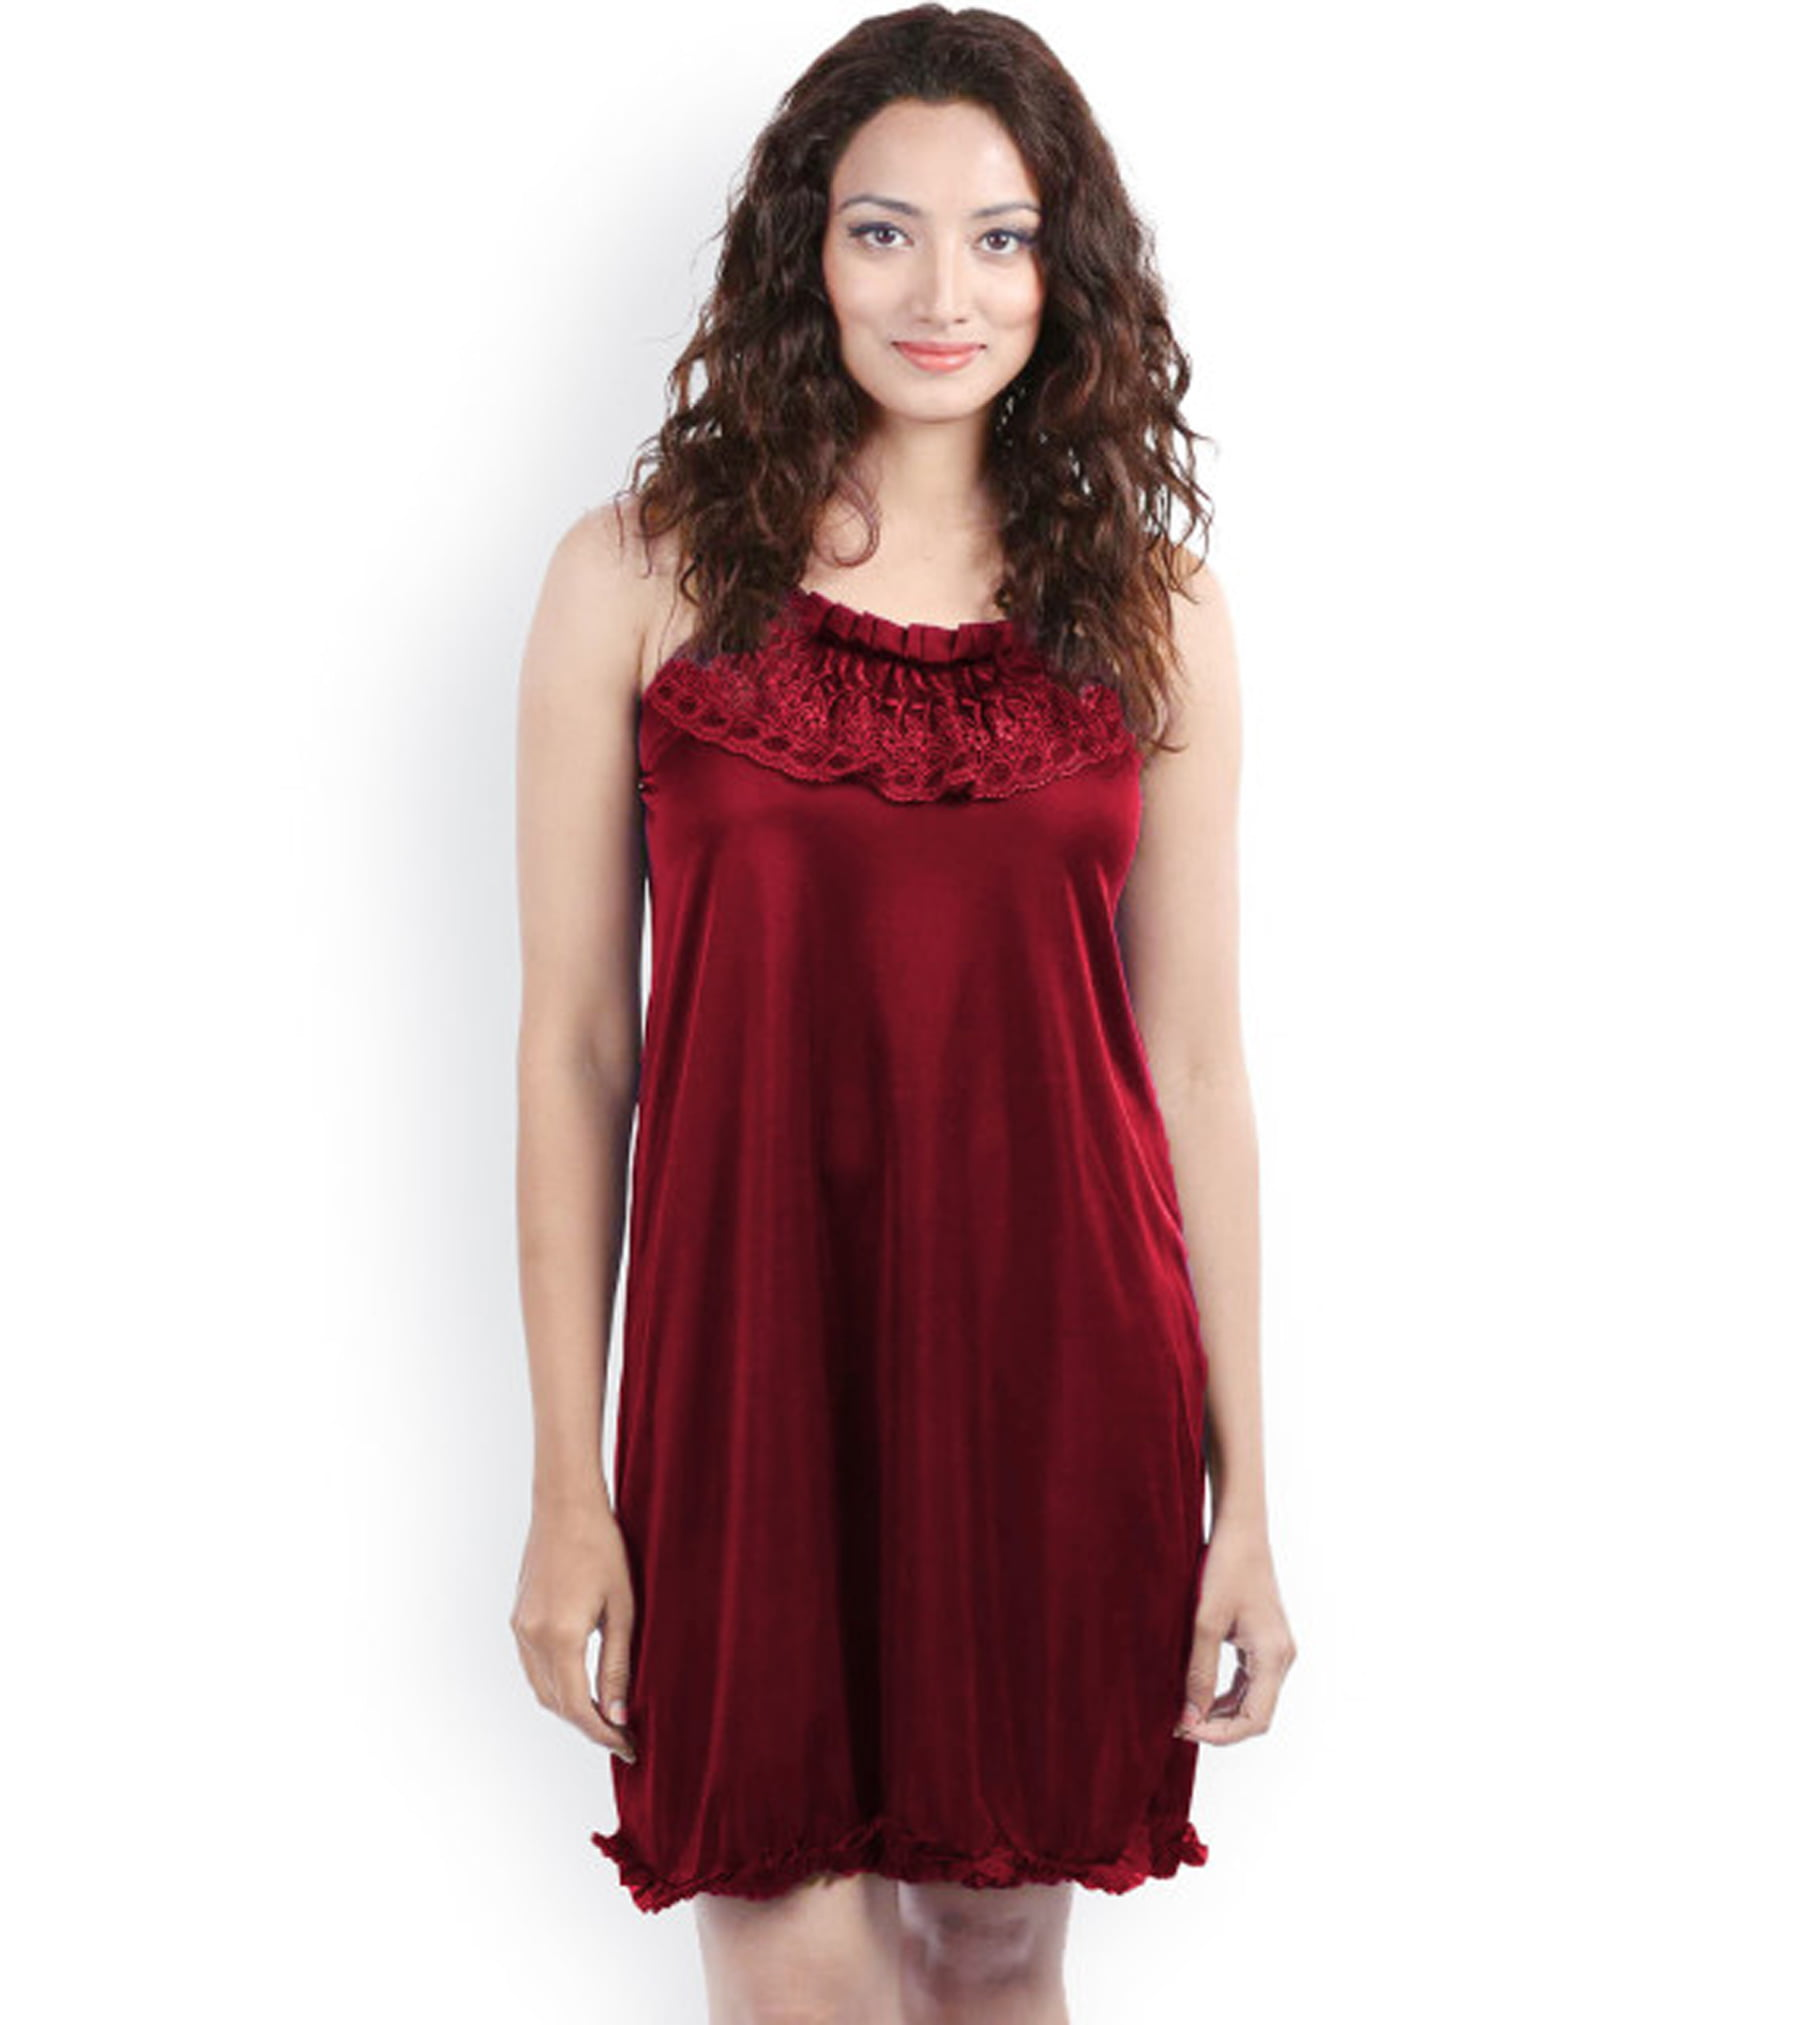 48dda7bcc4d Upto 80% Off on Nightdress at Myntra